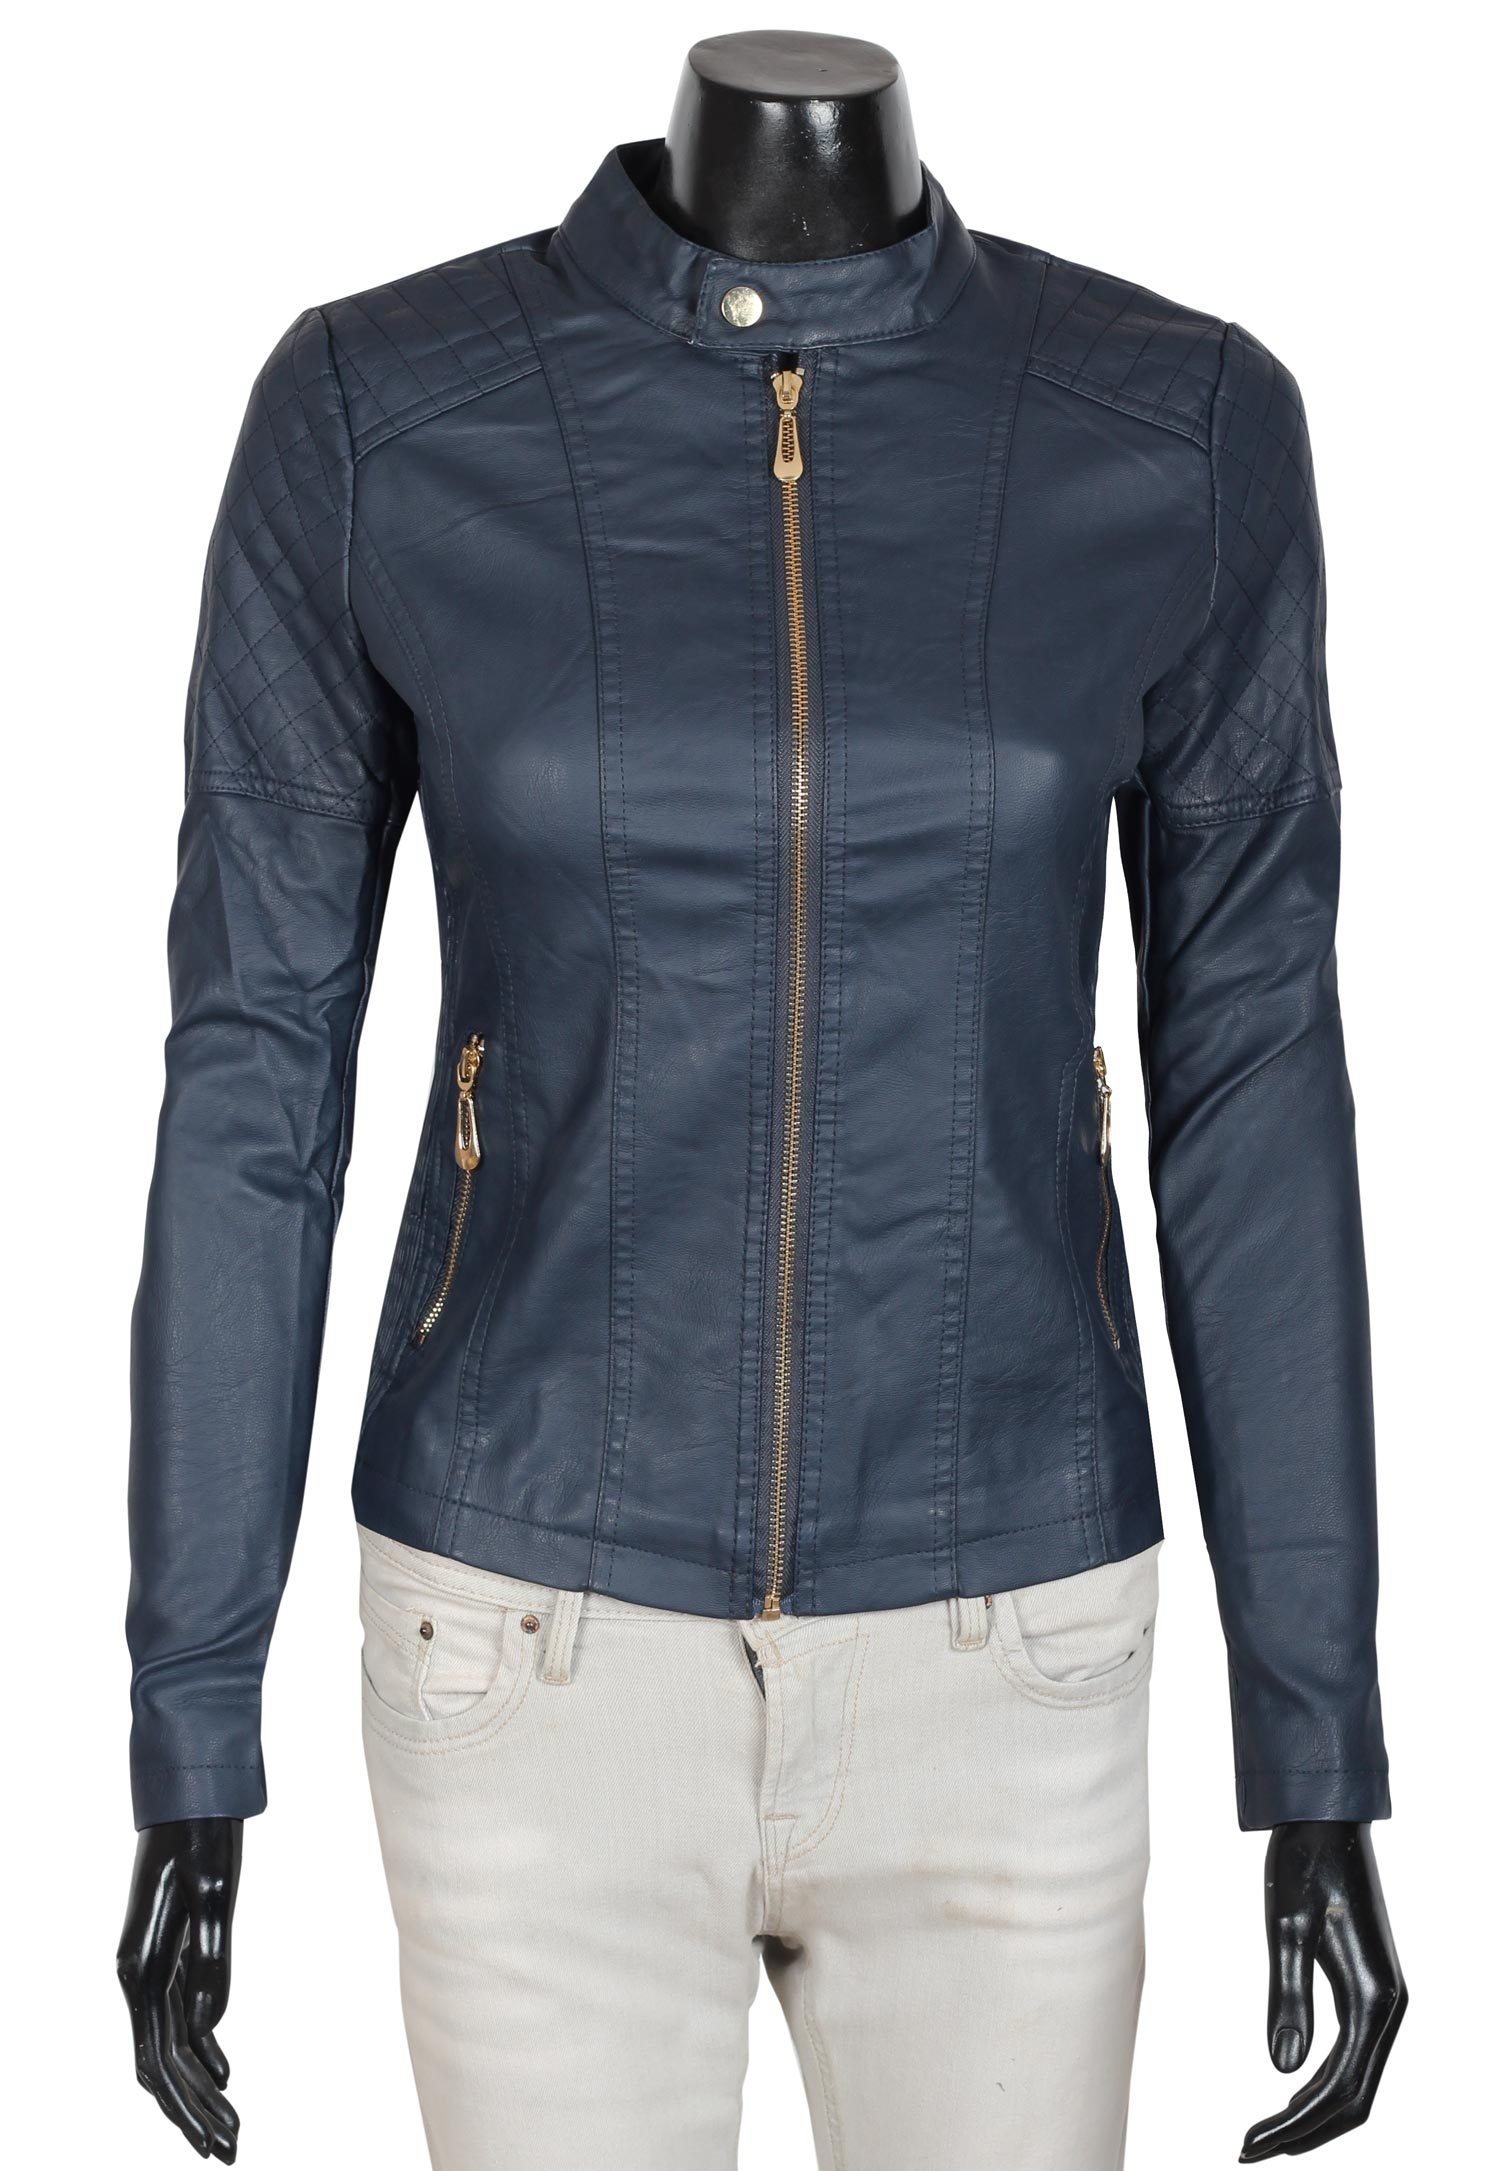 Decrum Womens Round Collar Motorcycle Jacket | Style 4 Navy, XS